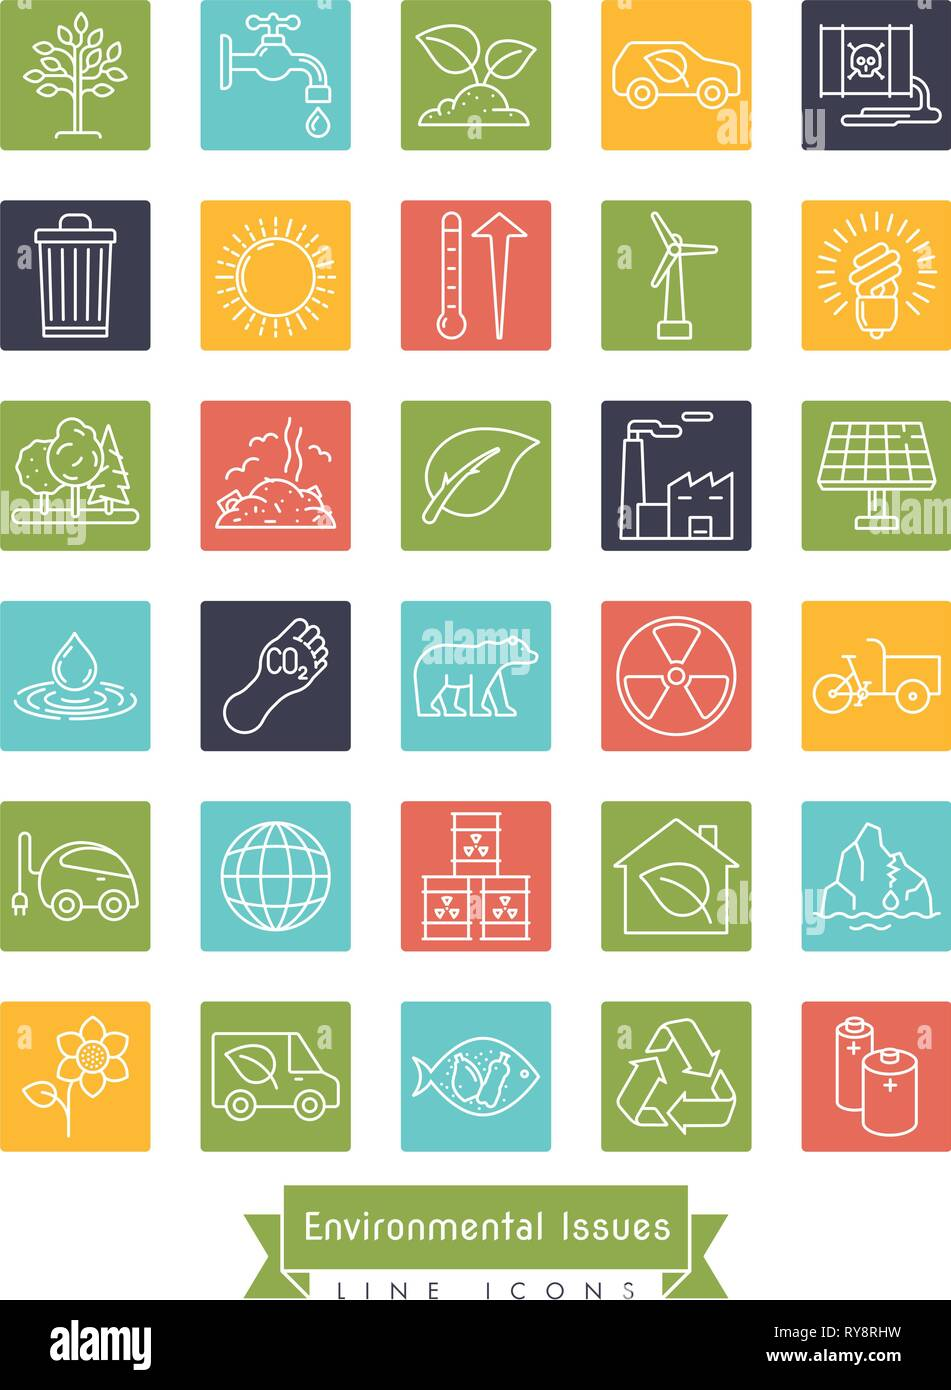 Collection of Environment and Climate related vector line icons in colored squares. Sustainability, global warming and climate change symbols. - Stock Vector